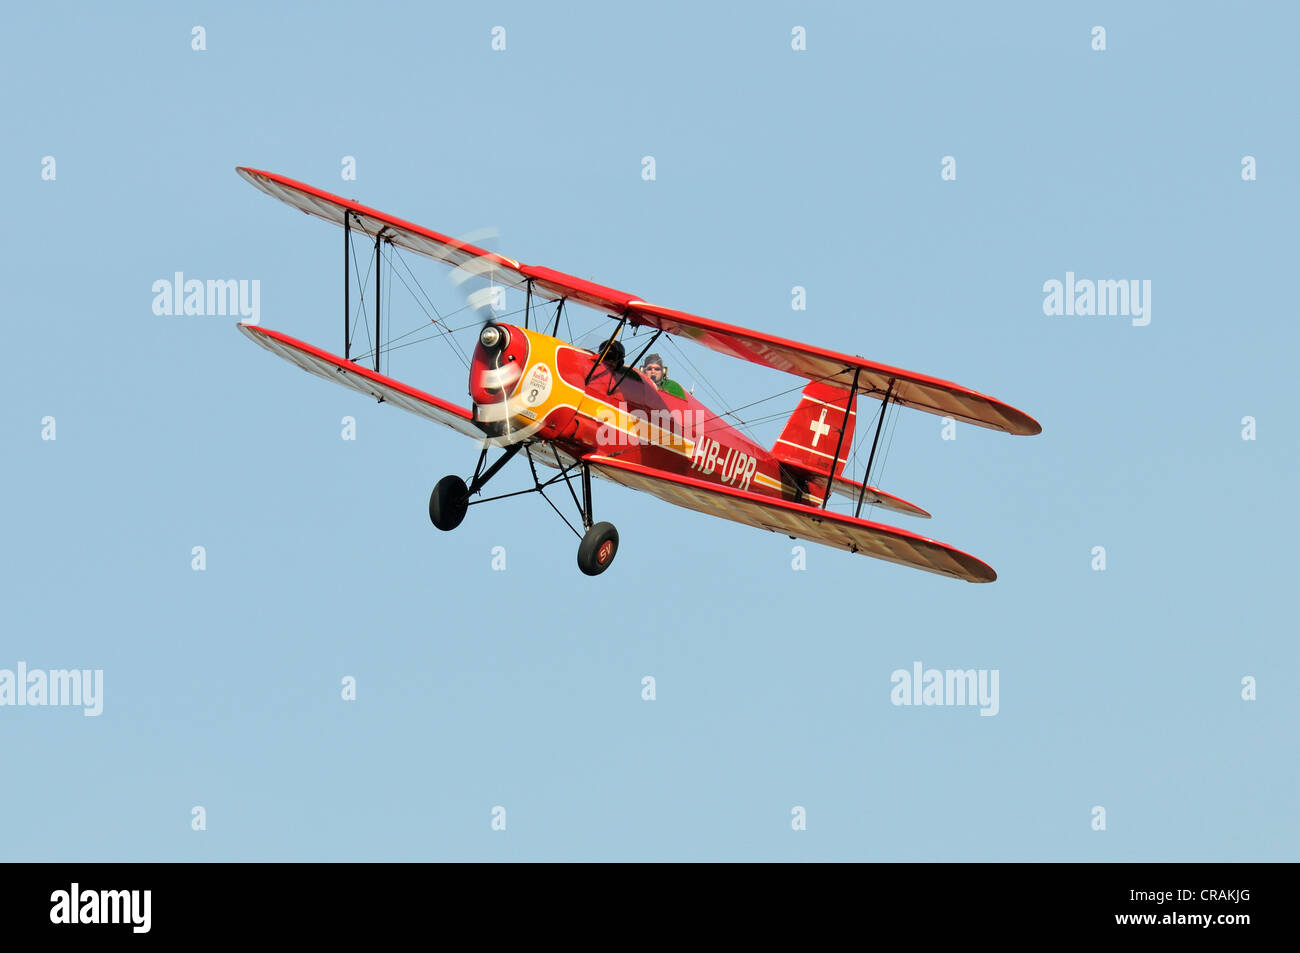 Belgian Stampe SV4A biplane, first flight in 1938, Europe's largest meeting of vintage aircraft in Hahnweide, - Stock Image